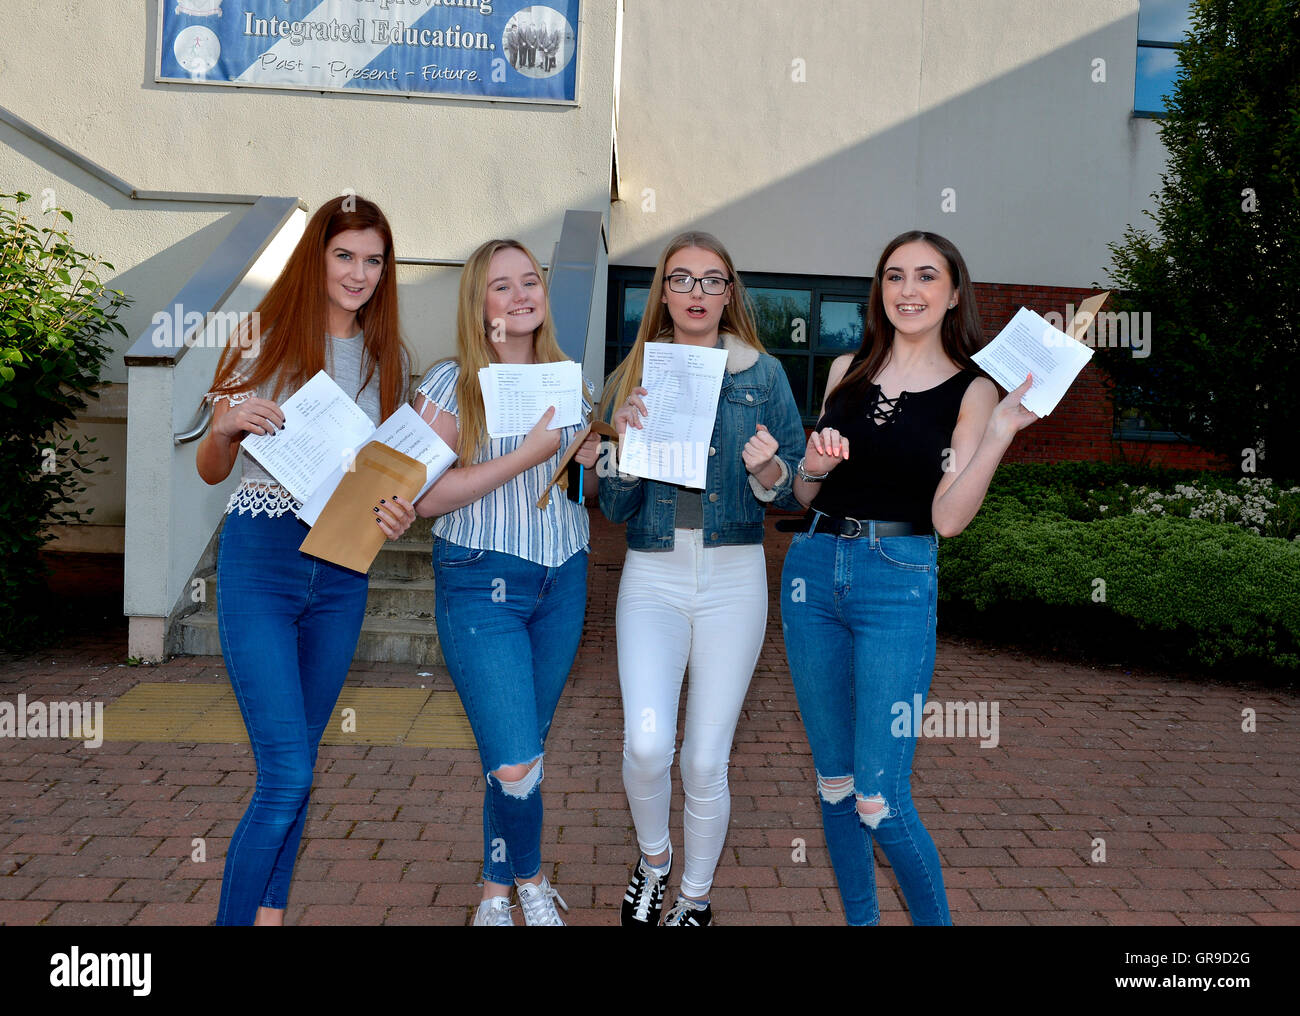 Teenage girls checking GCSE results, Londonderry, Northern Ireland. ©George Sweeney/Alamy - Stock Image